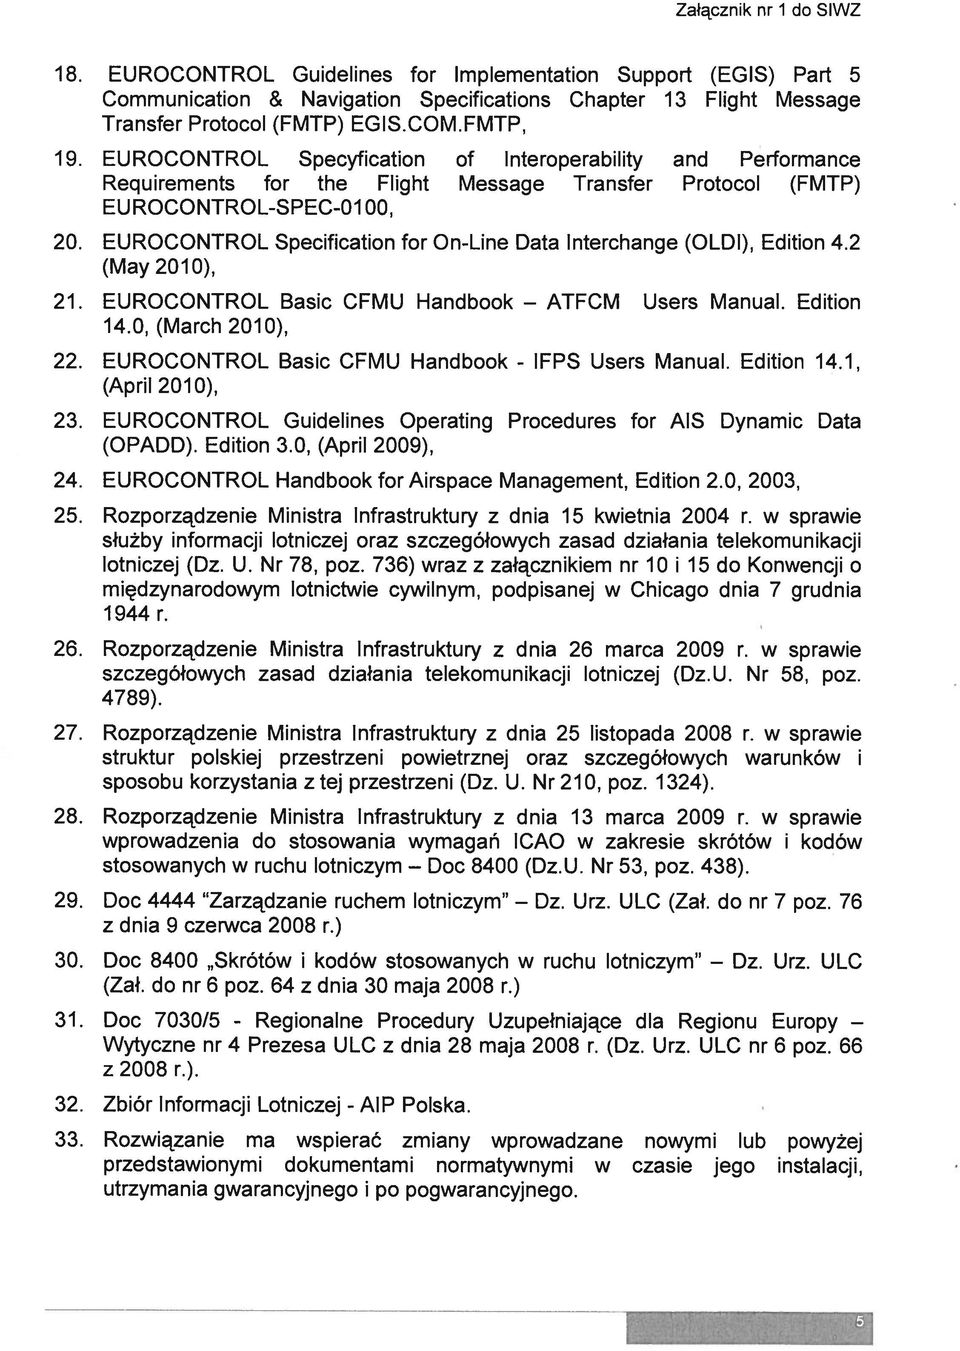 EUROCONTROL Specification for On-Line Data Interchange (OLDI), Edition 4.2 (May 2010), 21. EUROCONTROL Basic CFMU Handbook ATFCM Users Manual. Edition 14.0, (March 2010), 22.